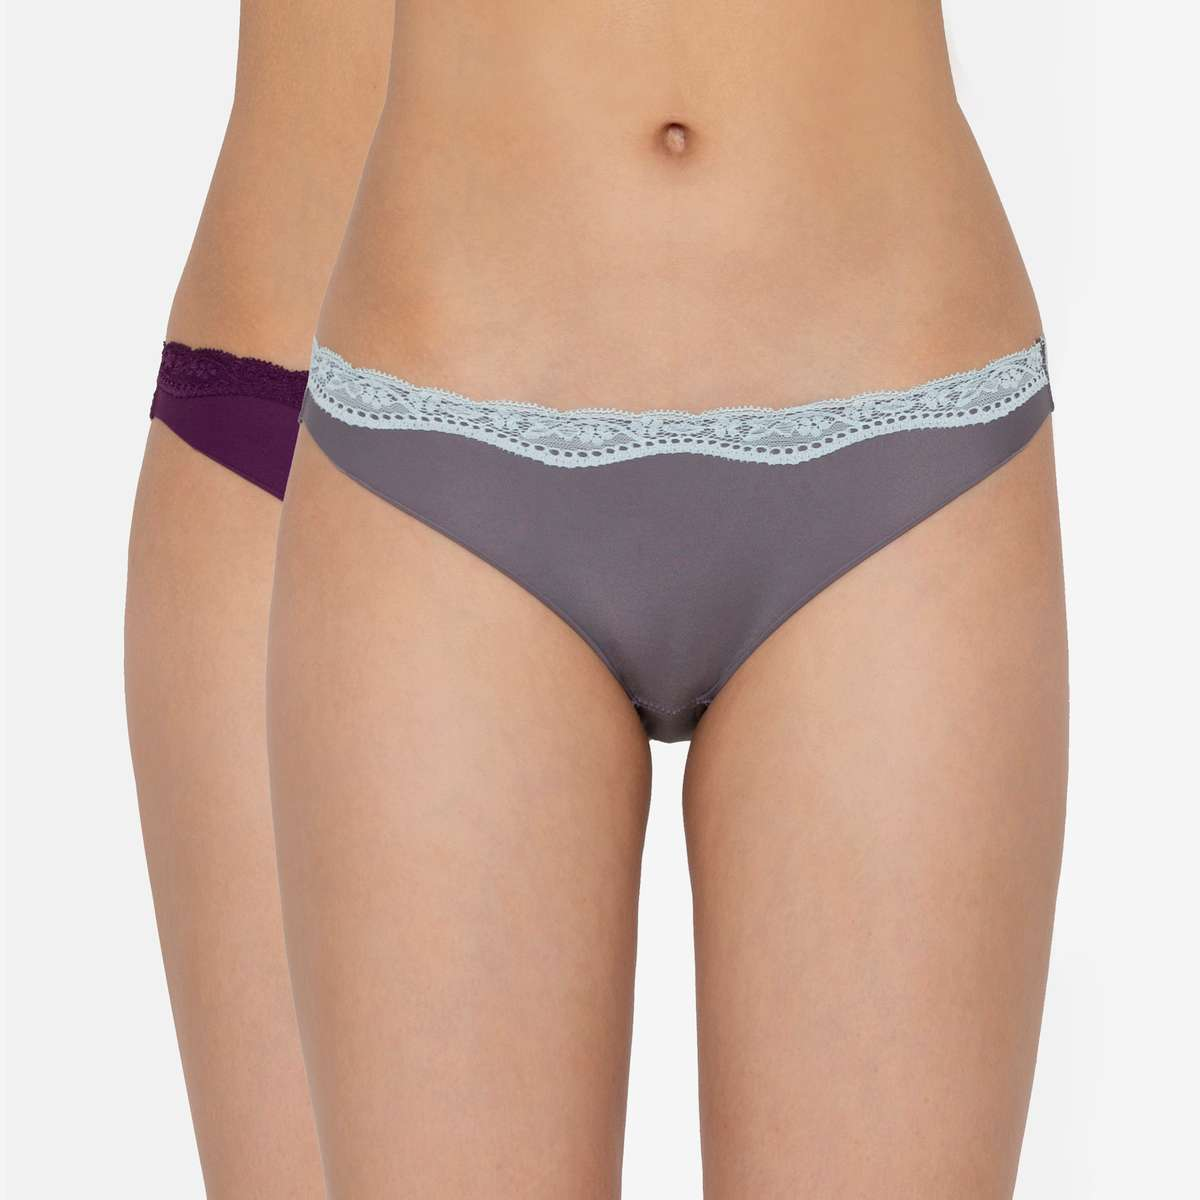 6.TRIUMPH Stretty Everyday Microfibre Bikini Lace Panties - Pack of 2